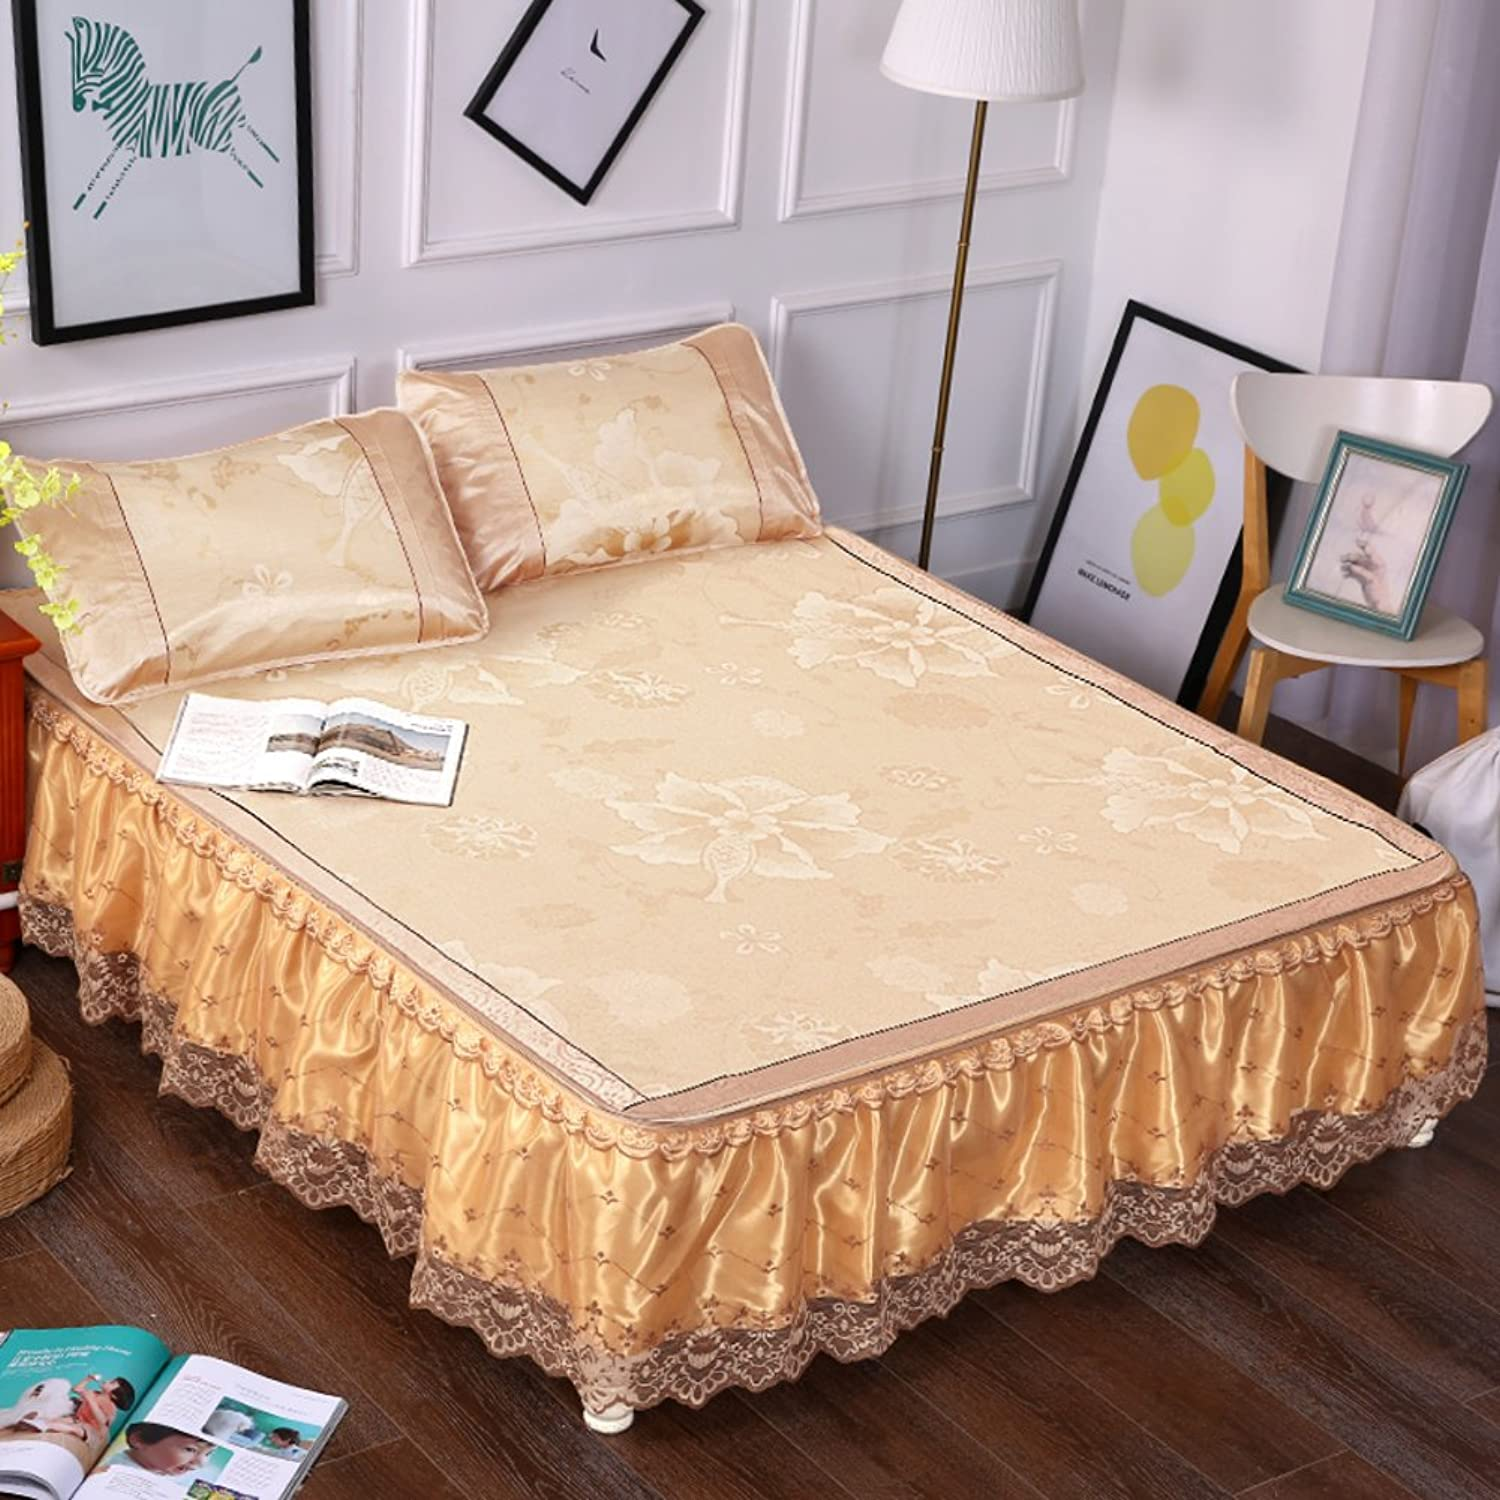 Summer lace Bed Skirt, Removable Three Sets ice Silk Summer mat Cool pad Flower Hypoallergenic Breathable Sleeping mat -E 180x200cm(71x79inch)